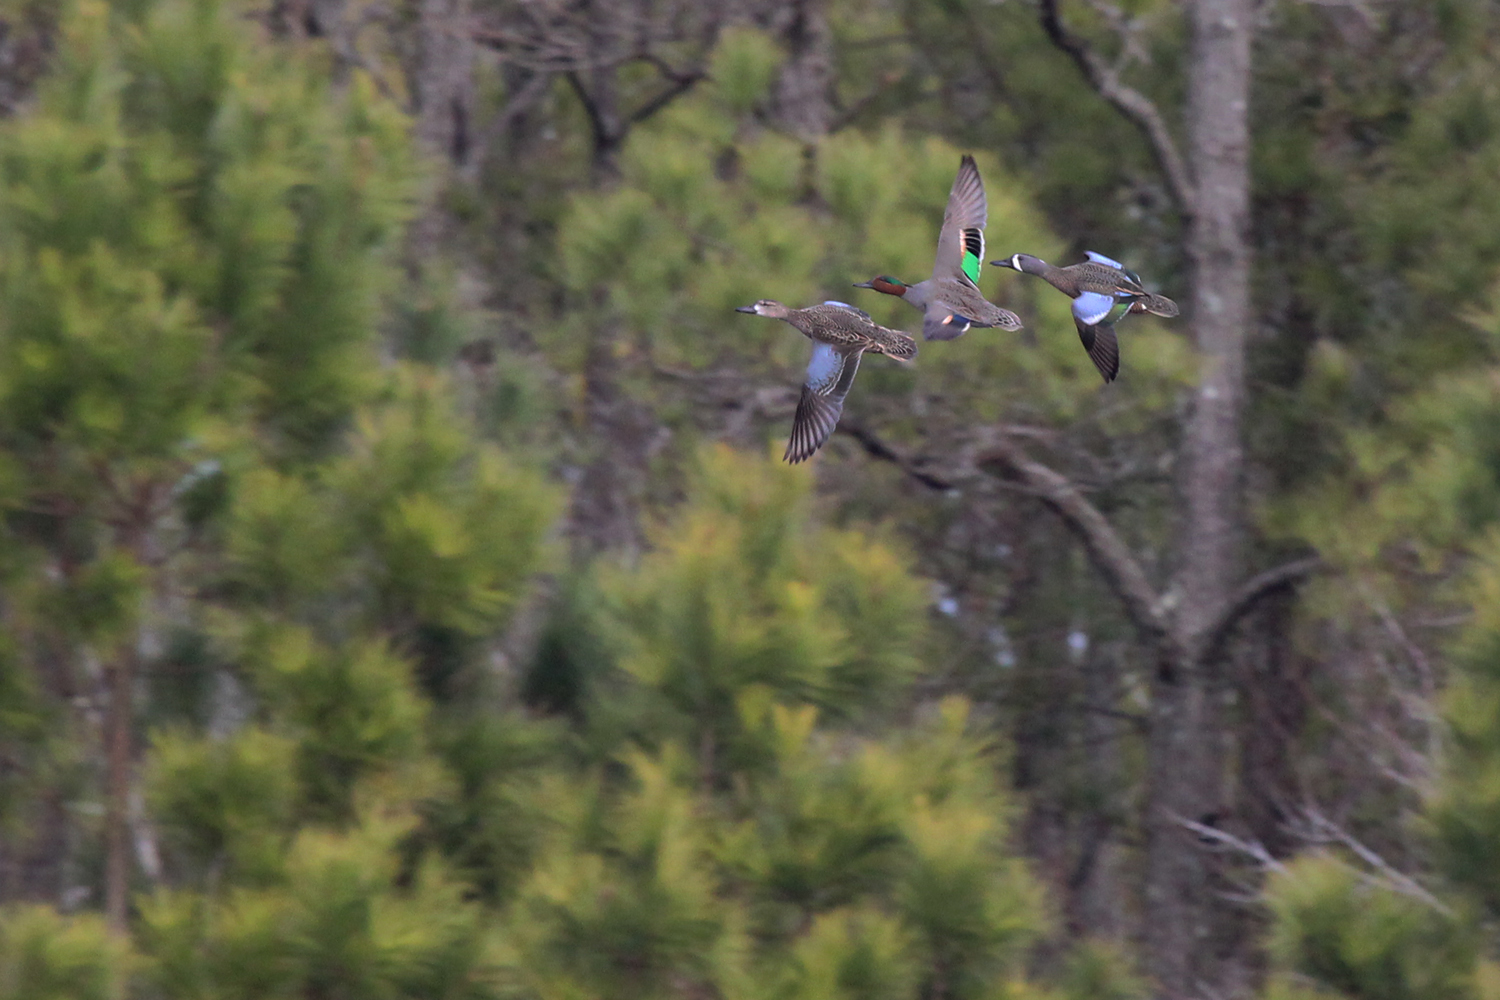 Blue-winged & Green-winged Teal / 17 Feb / Princess Anne WMA Beasley Tract